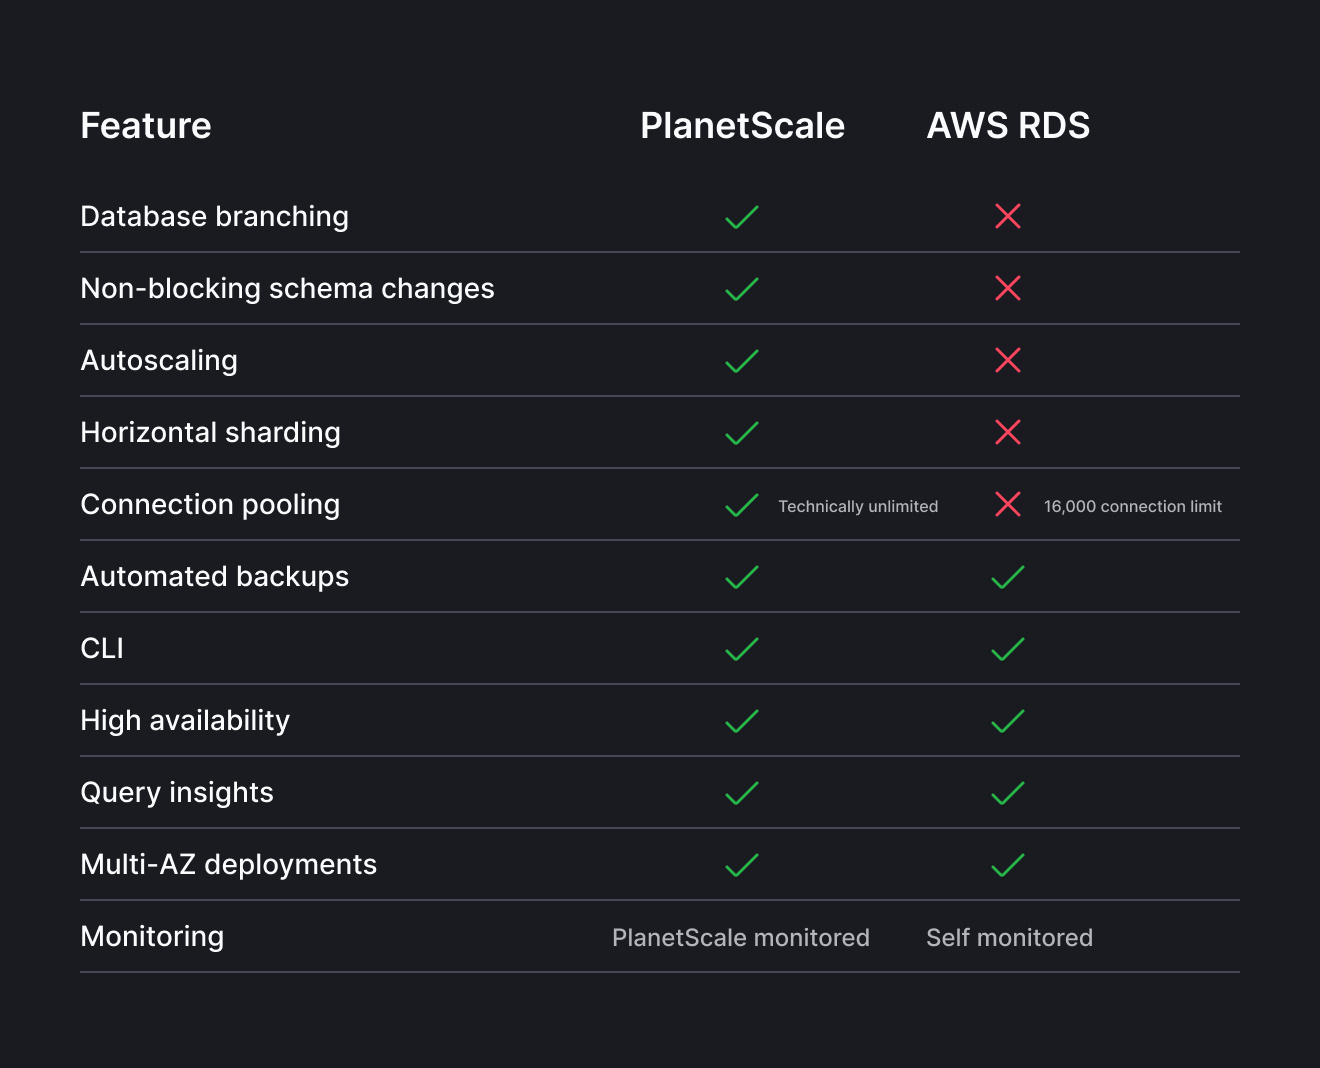 Feature comparisons between PlanetScale and RDS